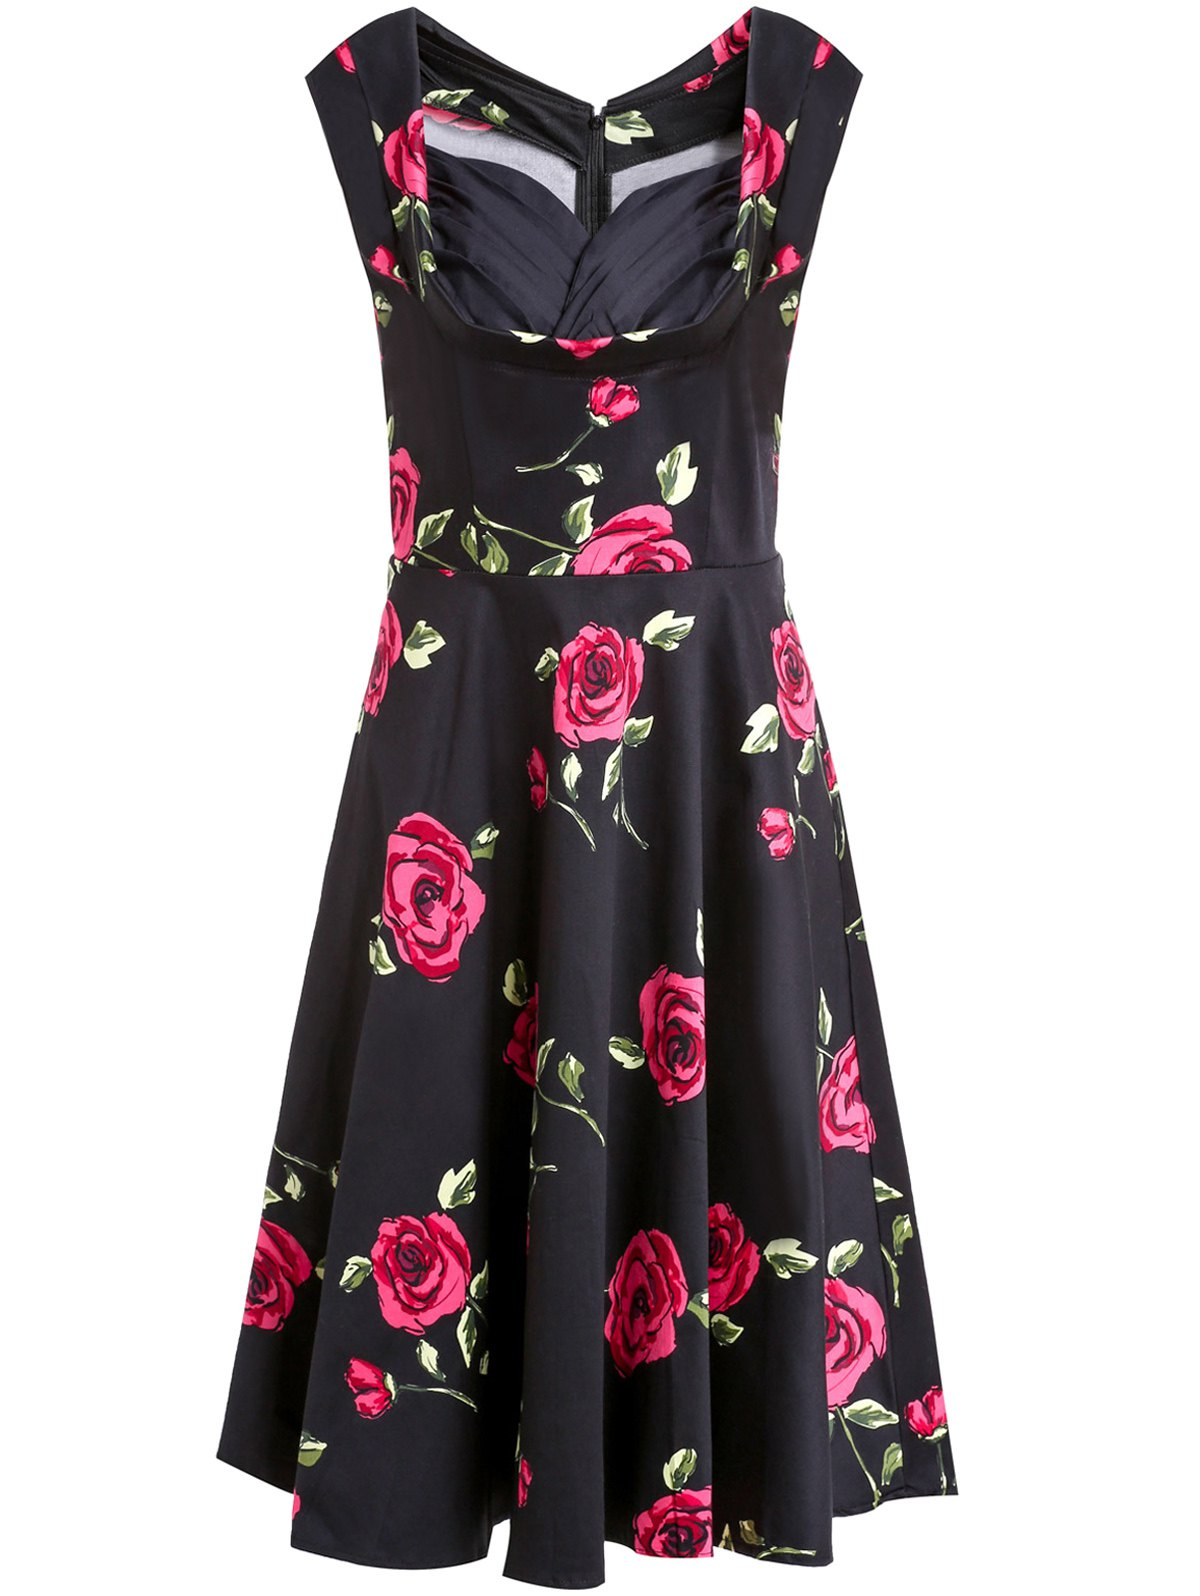 Vintage Rose Printed Sweetheart Neck Sleeveless Ball Gown Dress For Women - RED S